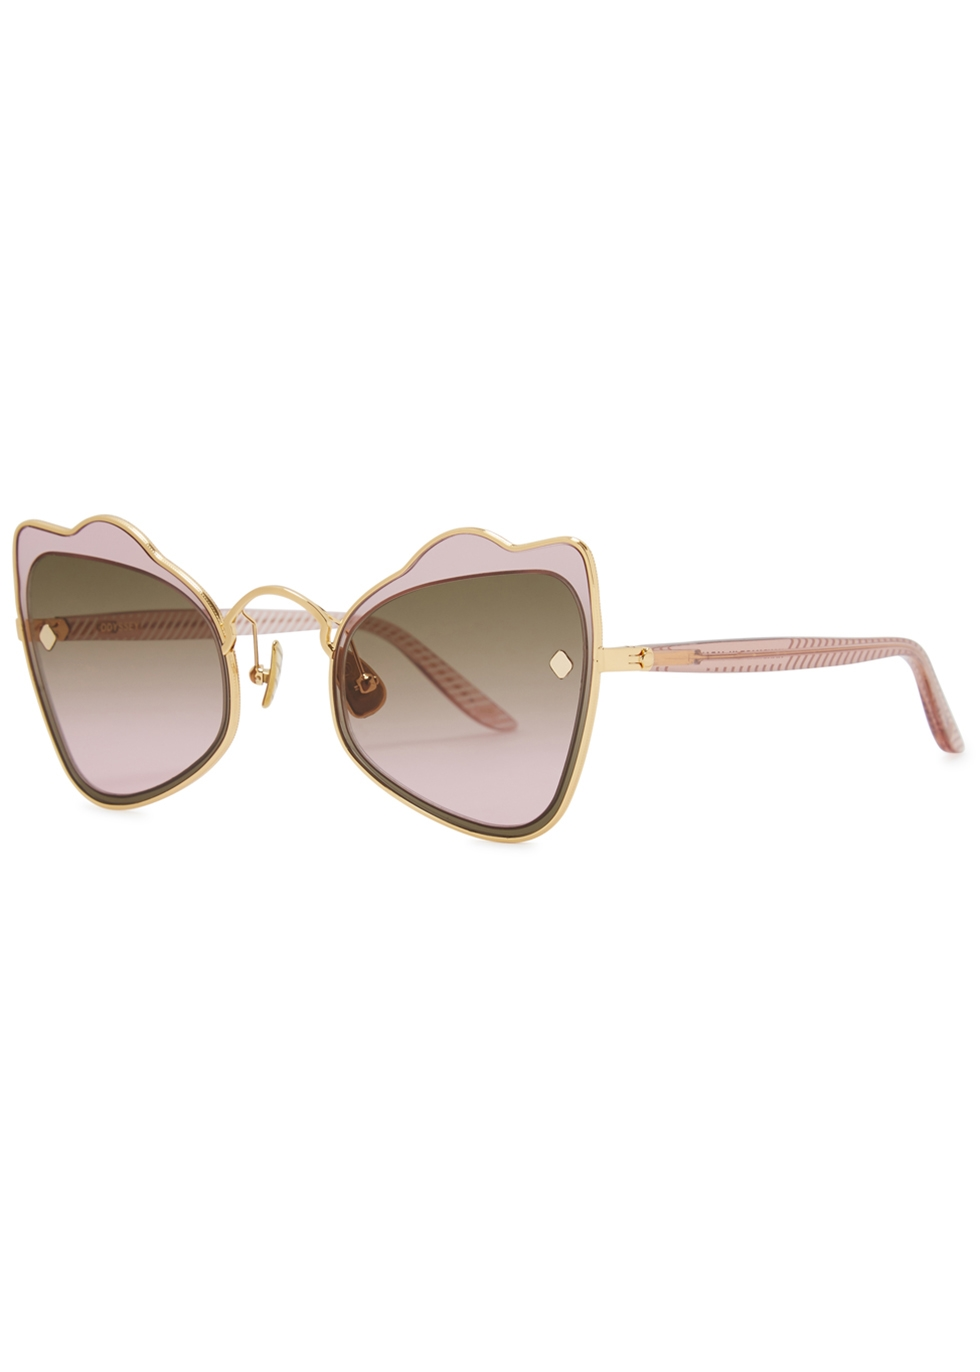 MOY ATELIER Odyssey 18Ct Gold-Plated Sunglasses in Pink